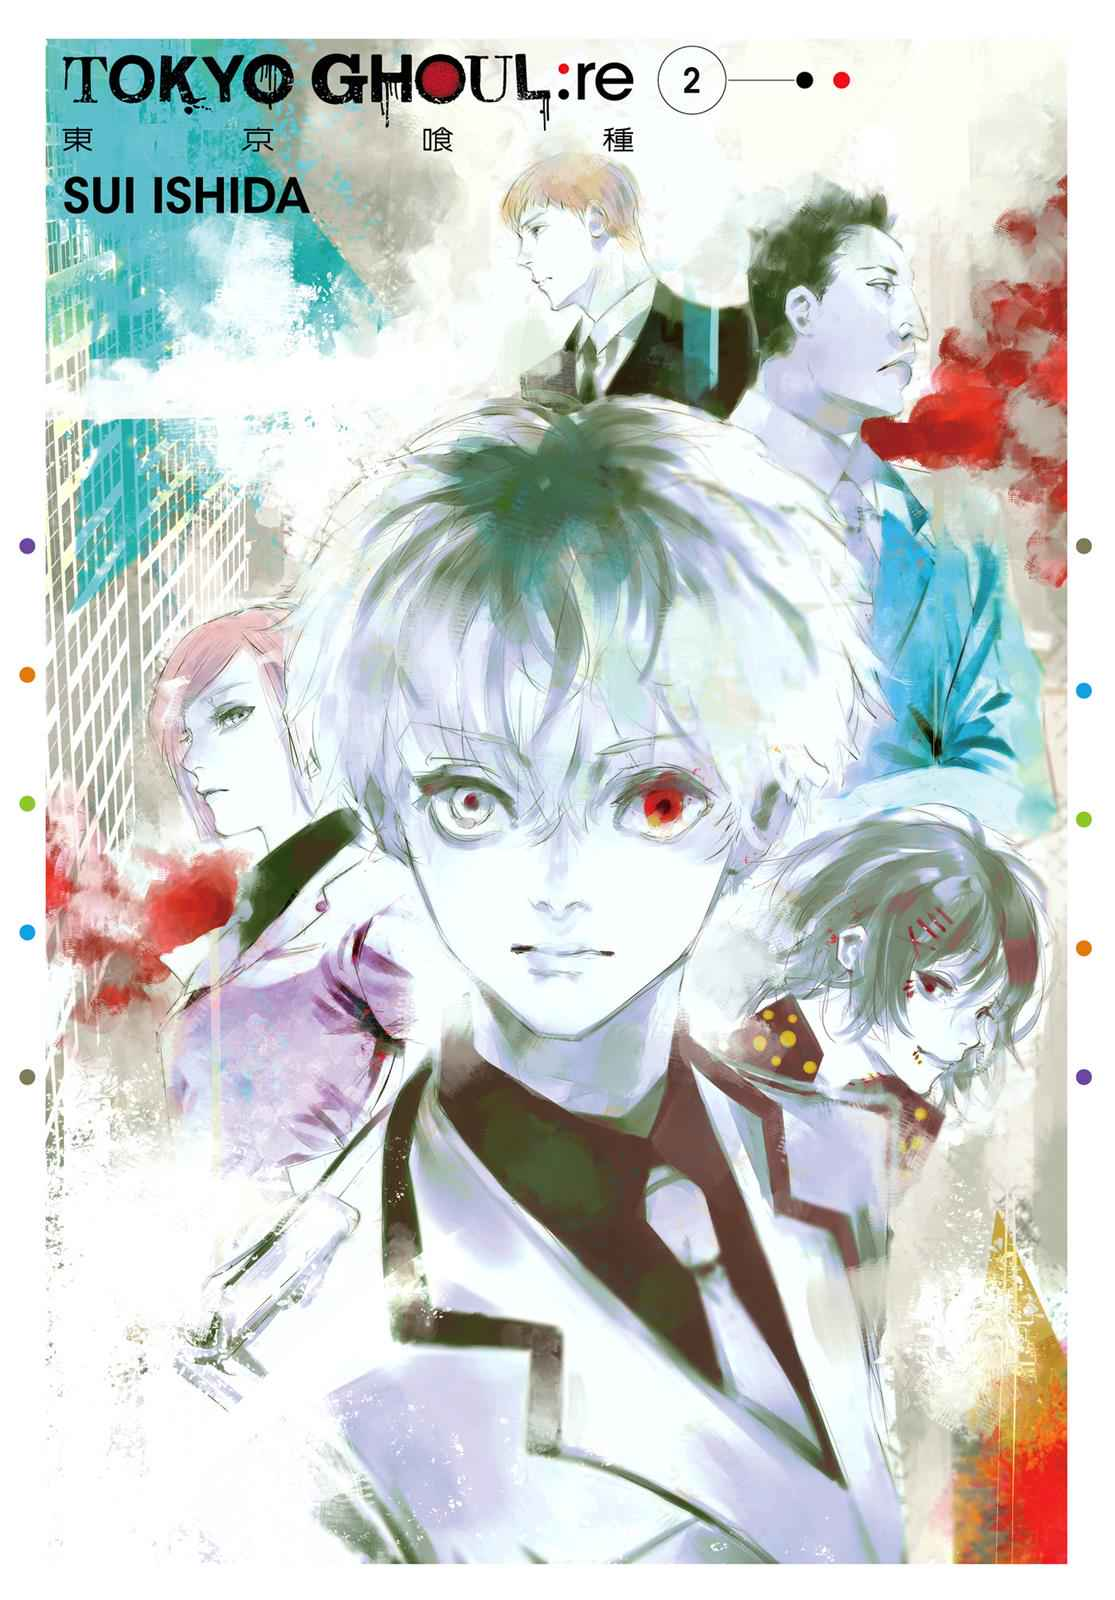 Tokyo Ghoul:re Chapter 10 Page 2